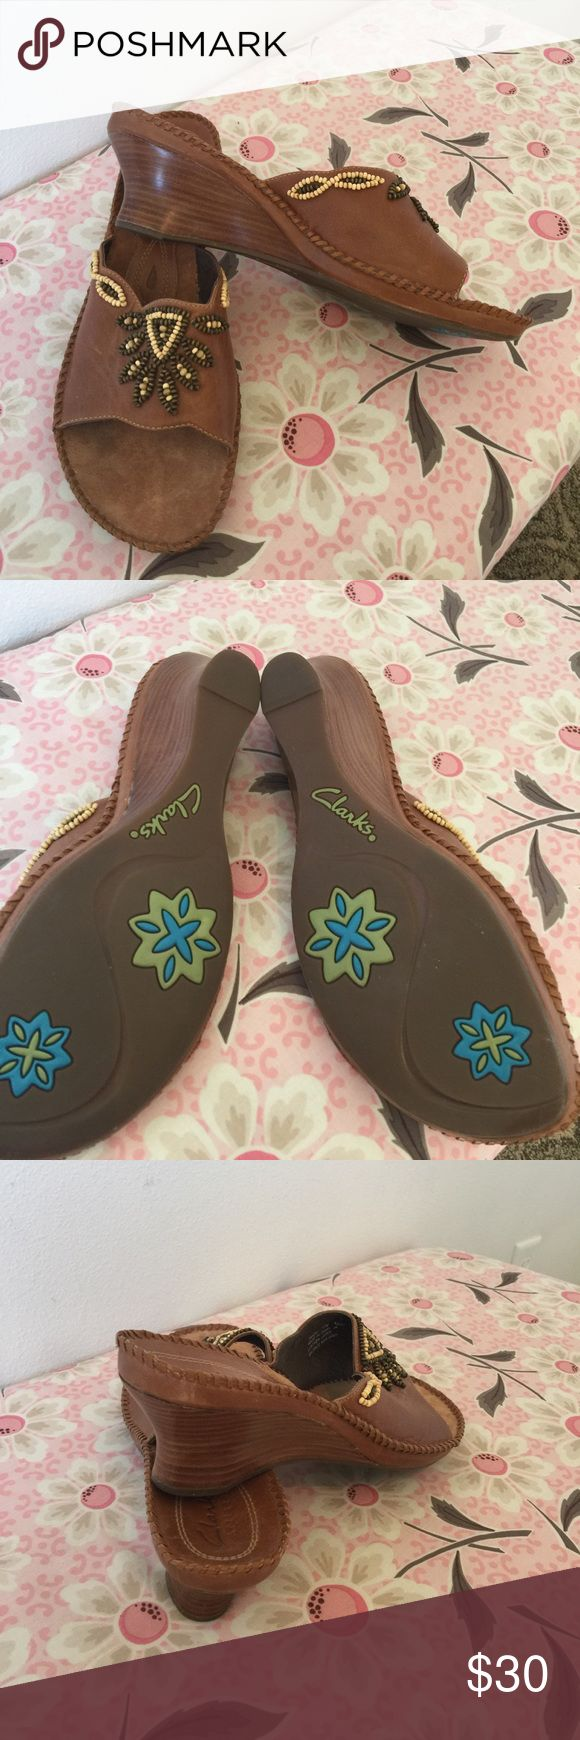 Clark's artisan sandals. Leather uppers 10 M Beaded details on the leather upper sandals are a beautiful detail.  Never worn Clarks Shoes Sandals